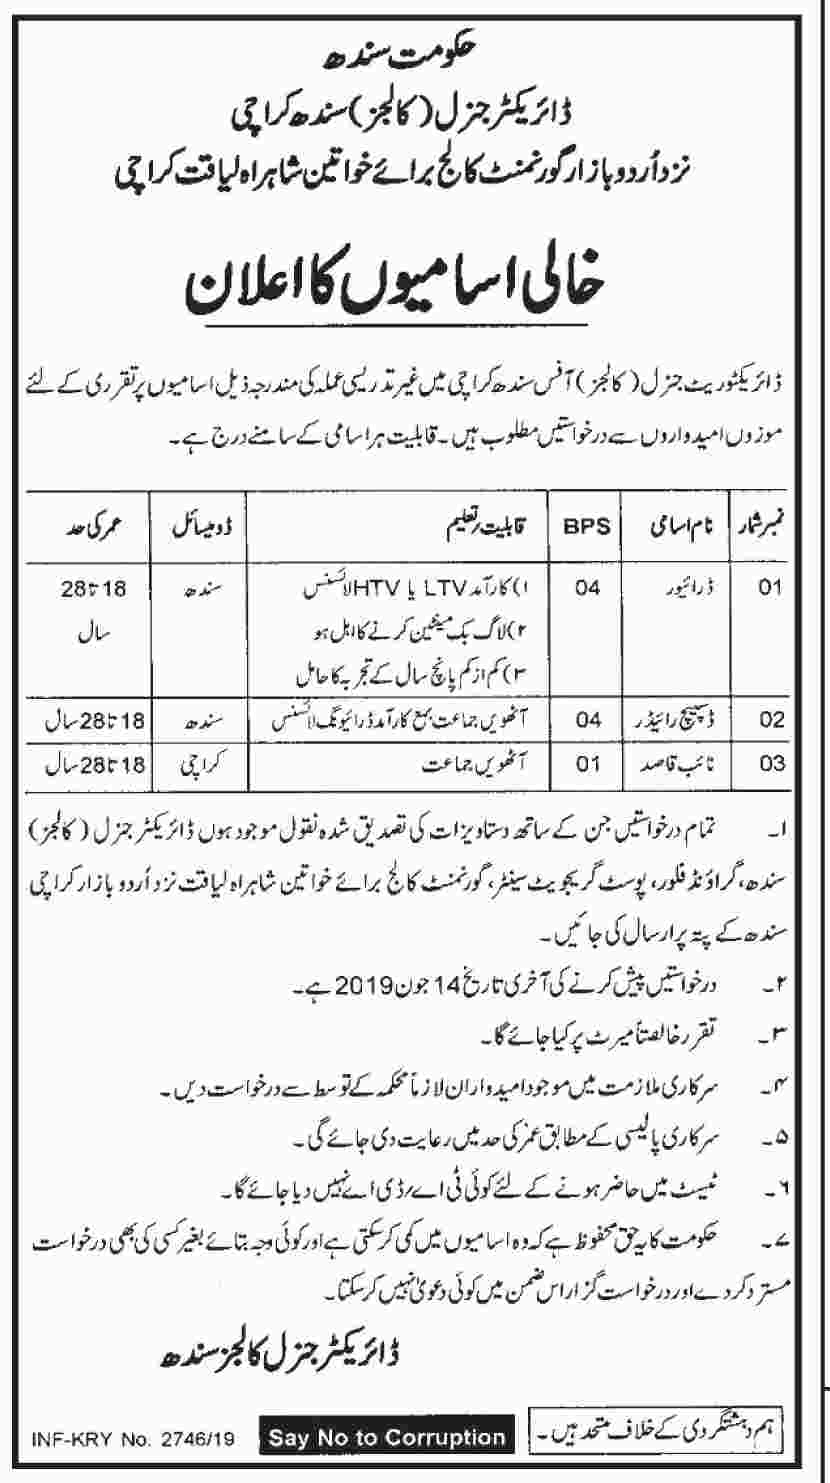 Education Department Govt of Sindh jobs 2019